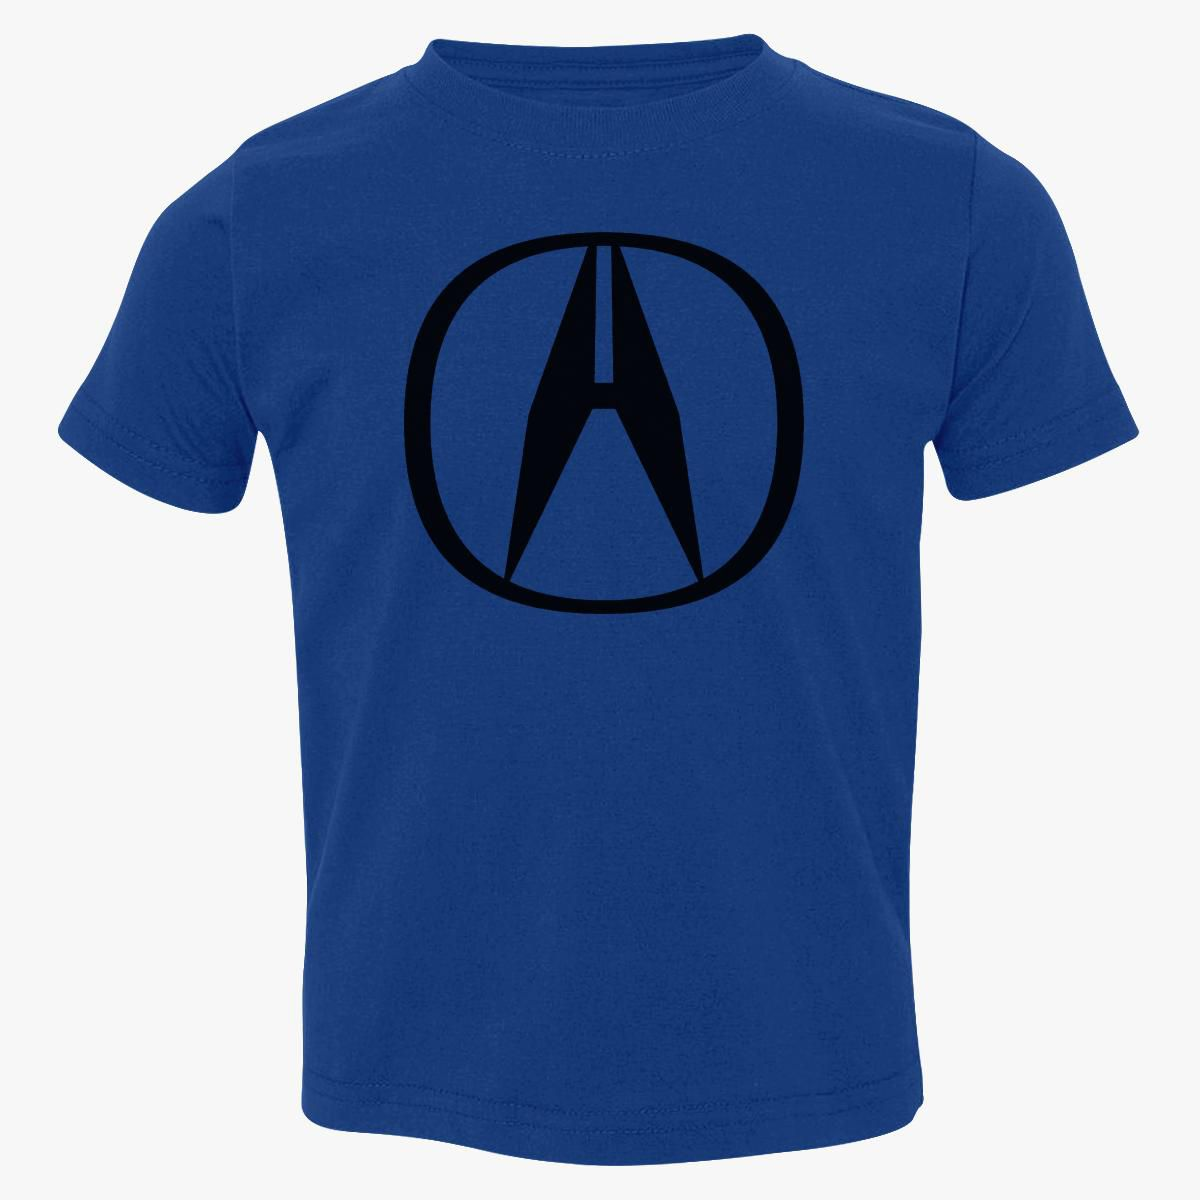 Acura Symbol Toddler T-shirt